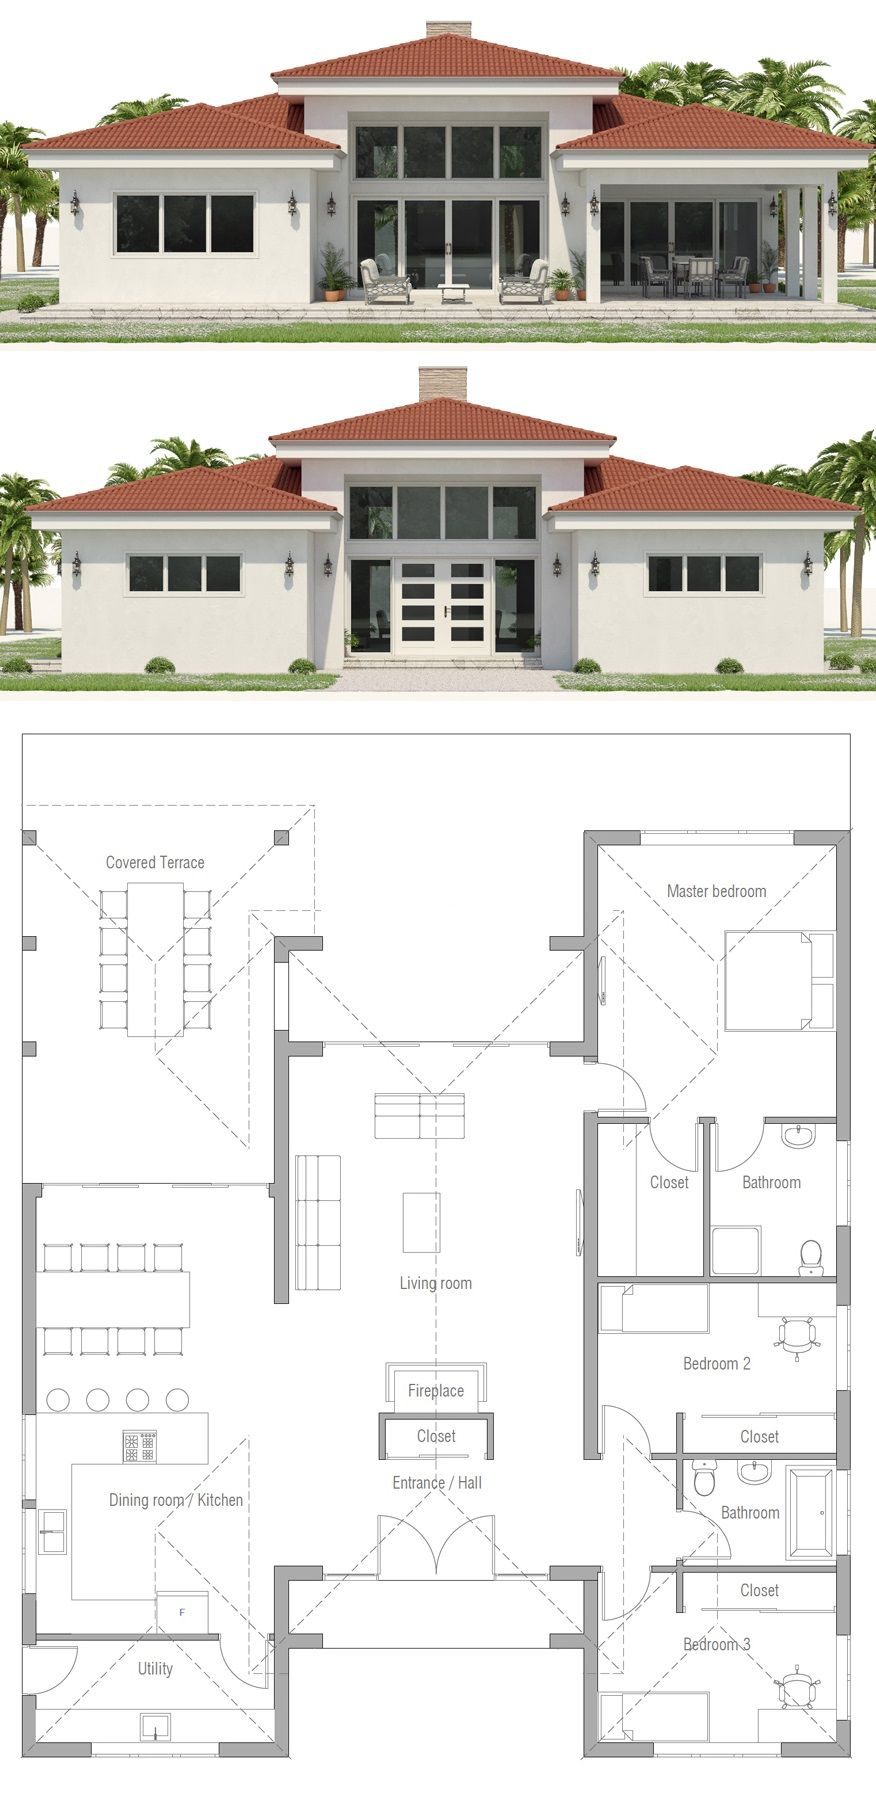 House Plans Home Plans New Home Homeplans Houseplans Architecture Dwell Archdaily Archilov House Construction Plan Indian House Plans Beach House Plans